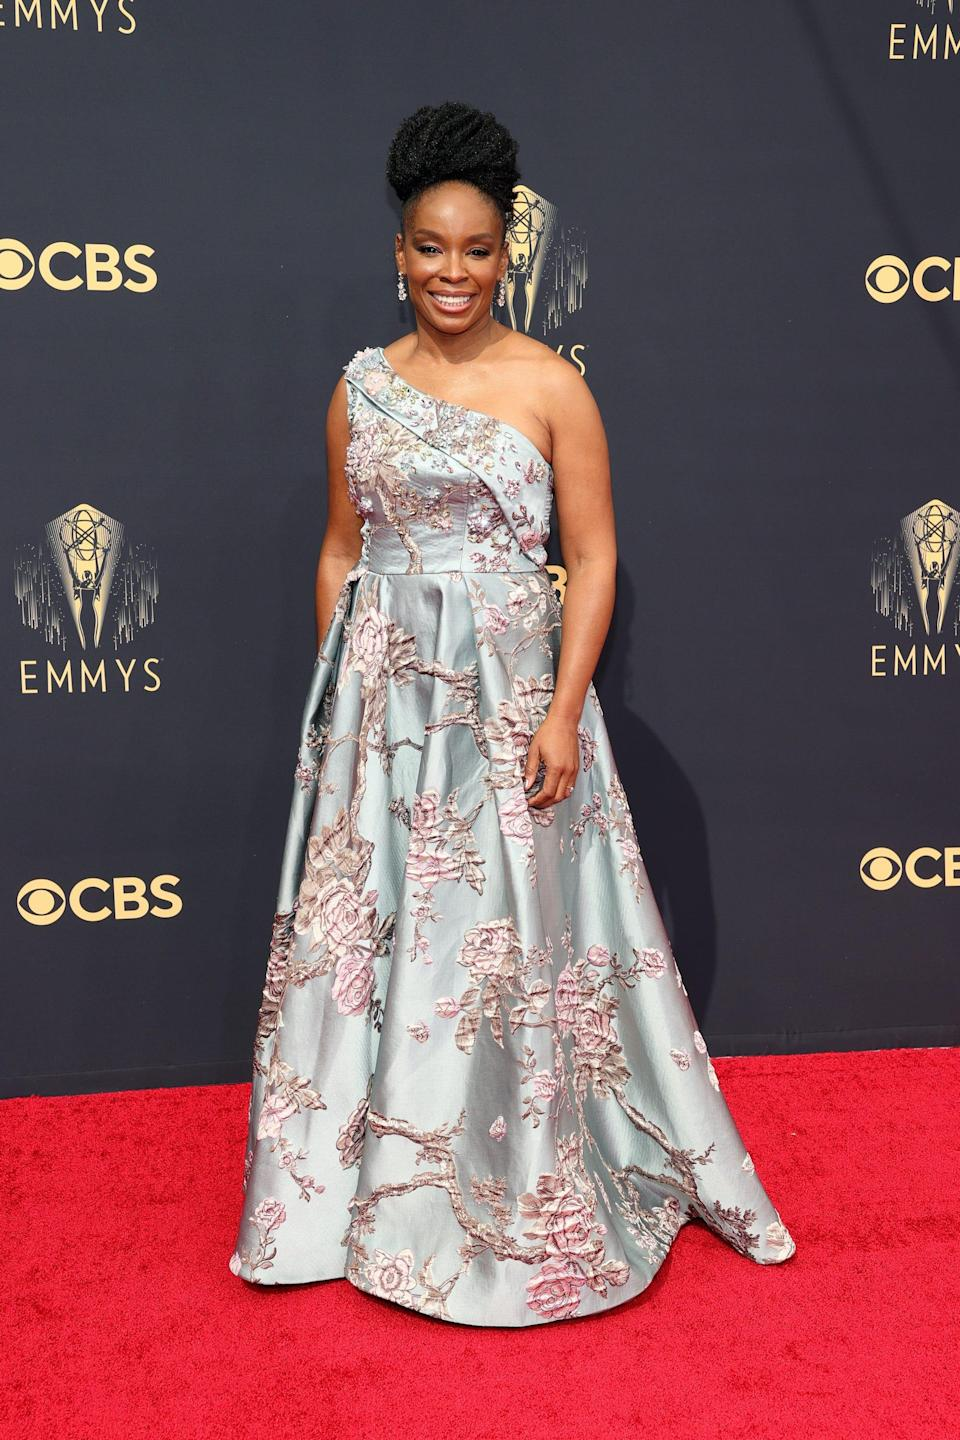 Amber Ruffin wears a one-strap dress on the Emmys red carpet.